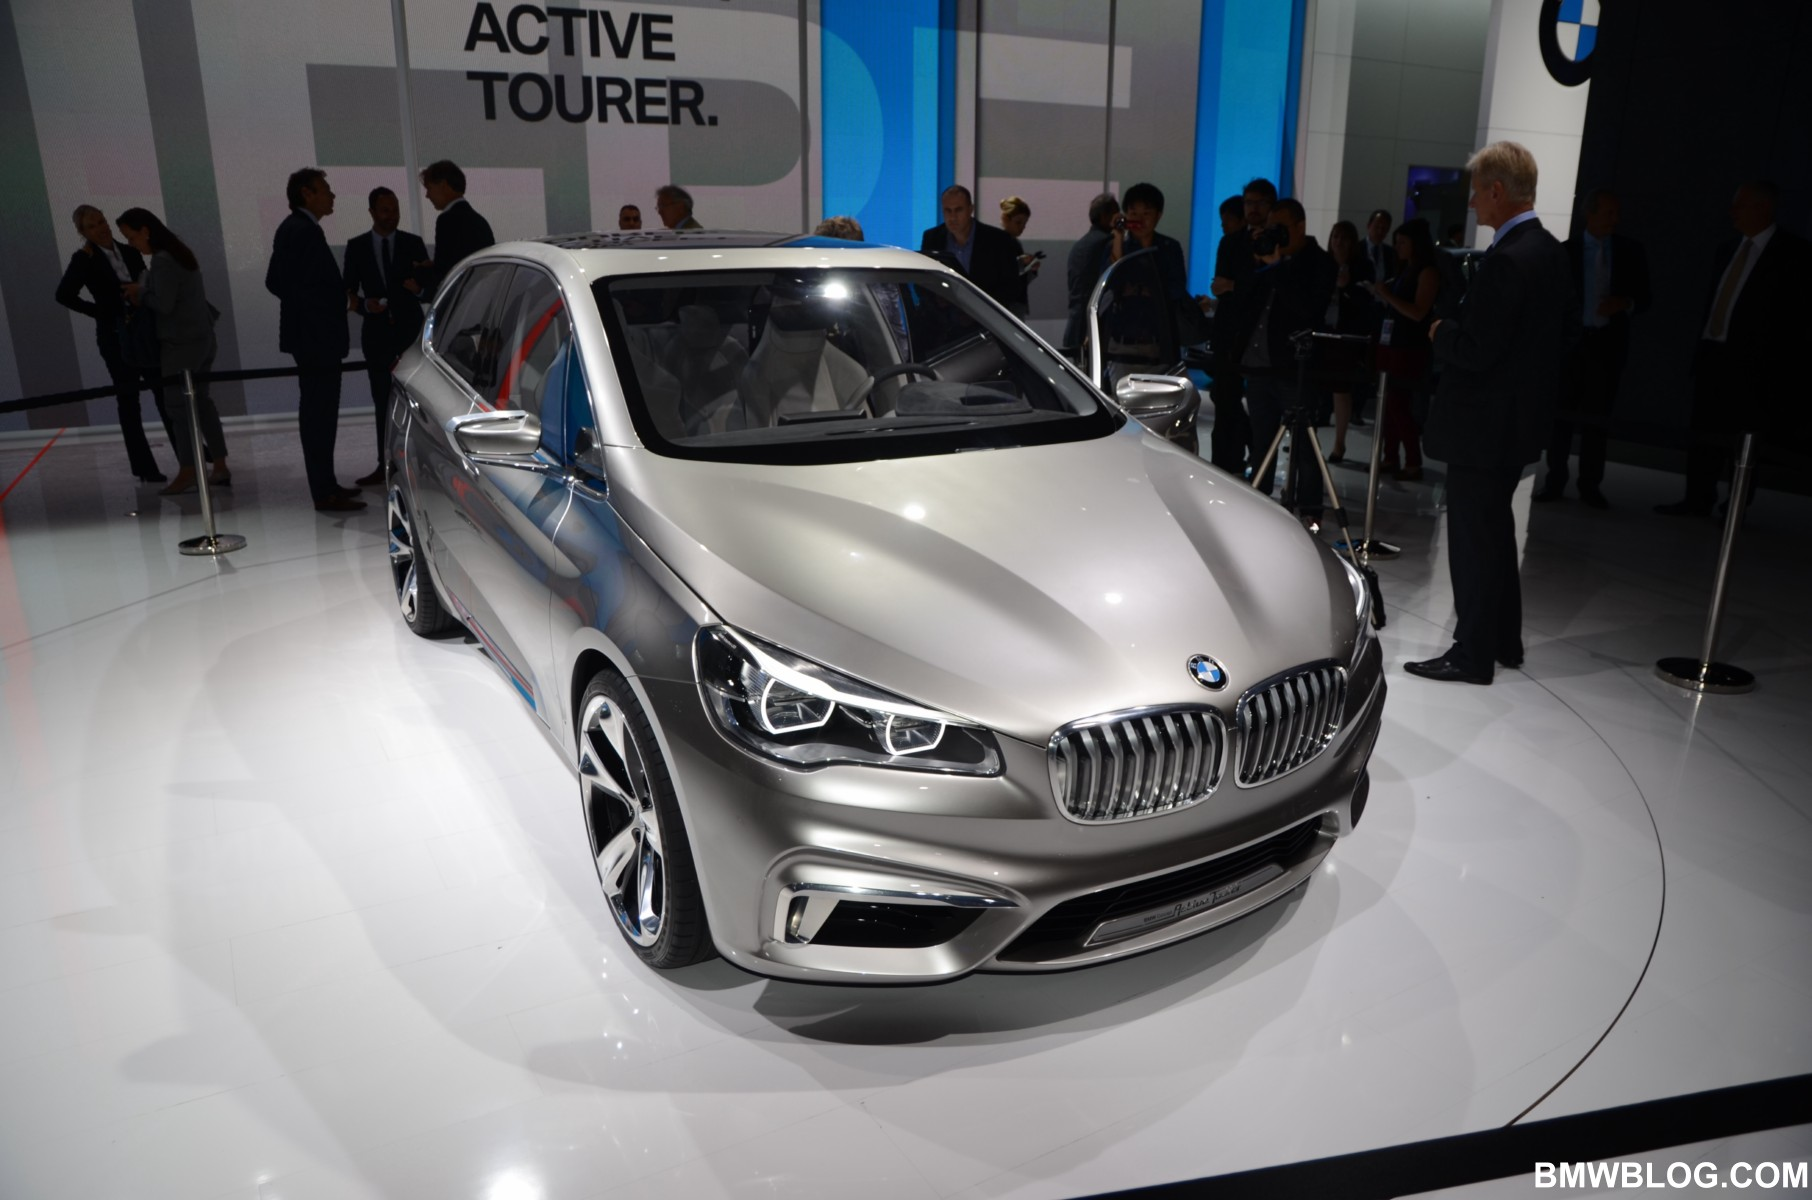 BMW Concept Active Tourer 11